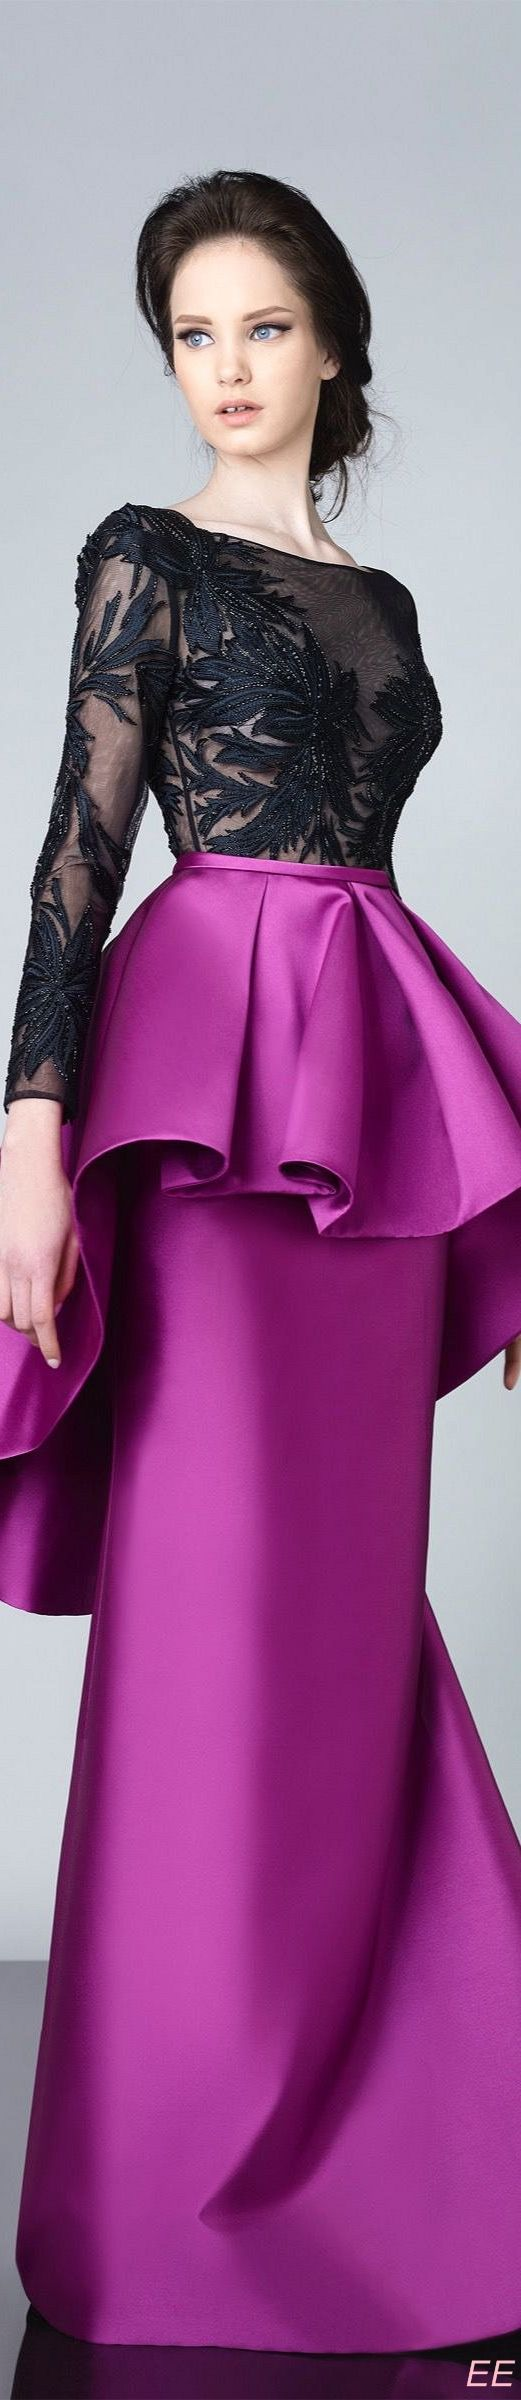 Divina by Edward Arsouni Fall-winter 2016-2017 - EE